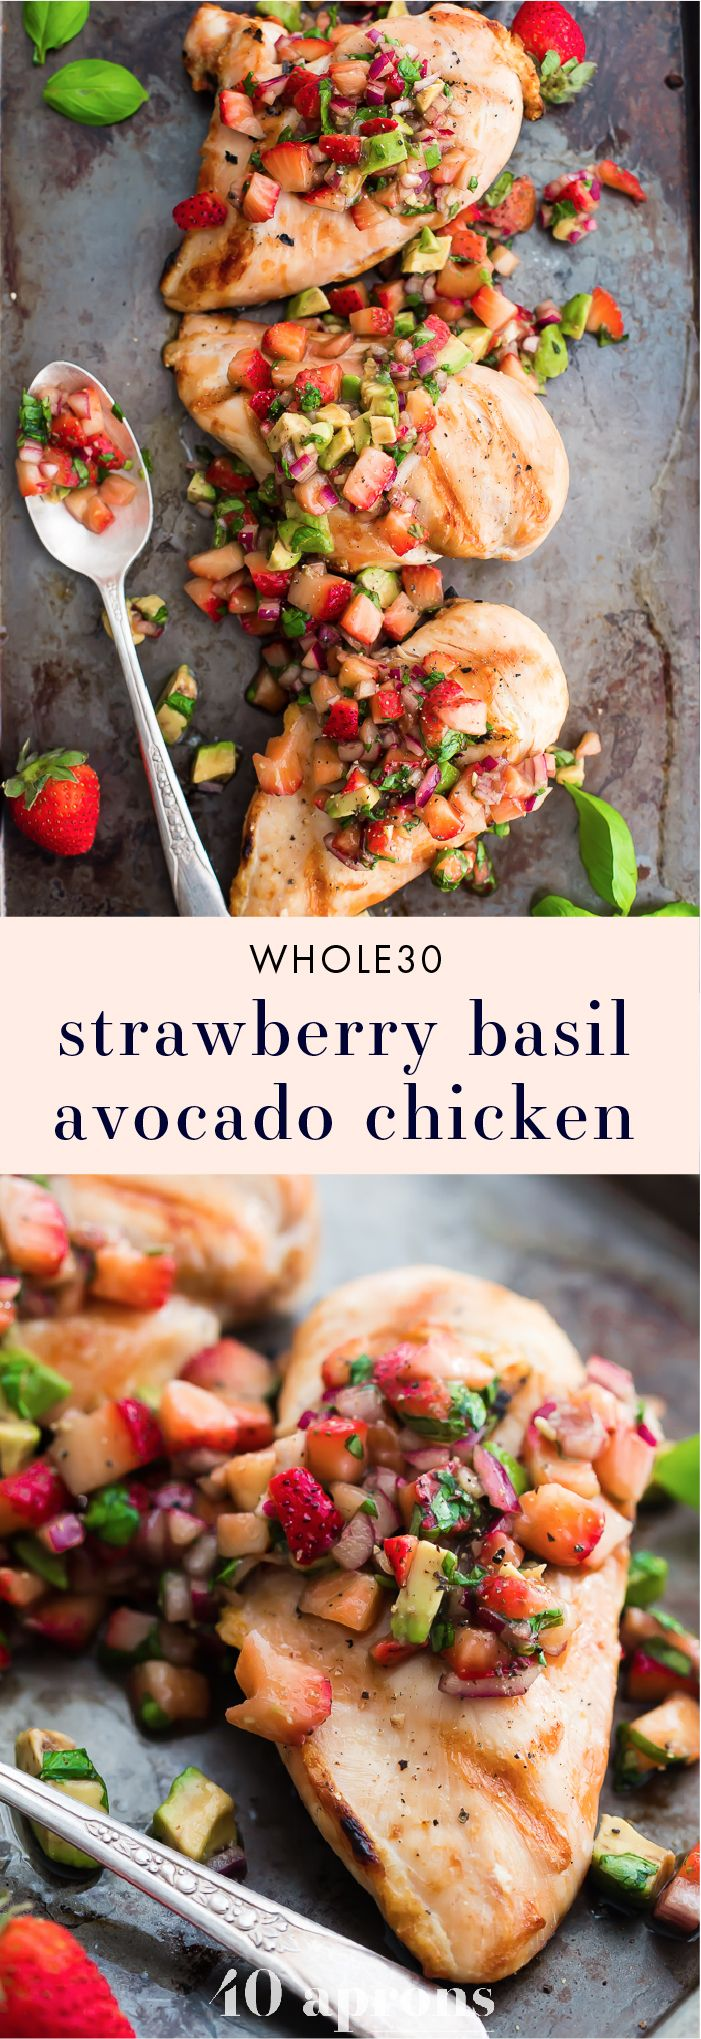 This Whole30 strawberry basil chicken with avocado is the ideal Whole30 grilled chicken recipe: quick, flavorful, and a little sweet! The perfect Whole30 dinner for those nights when you can't stand yet another savory recipe.